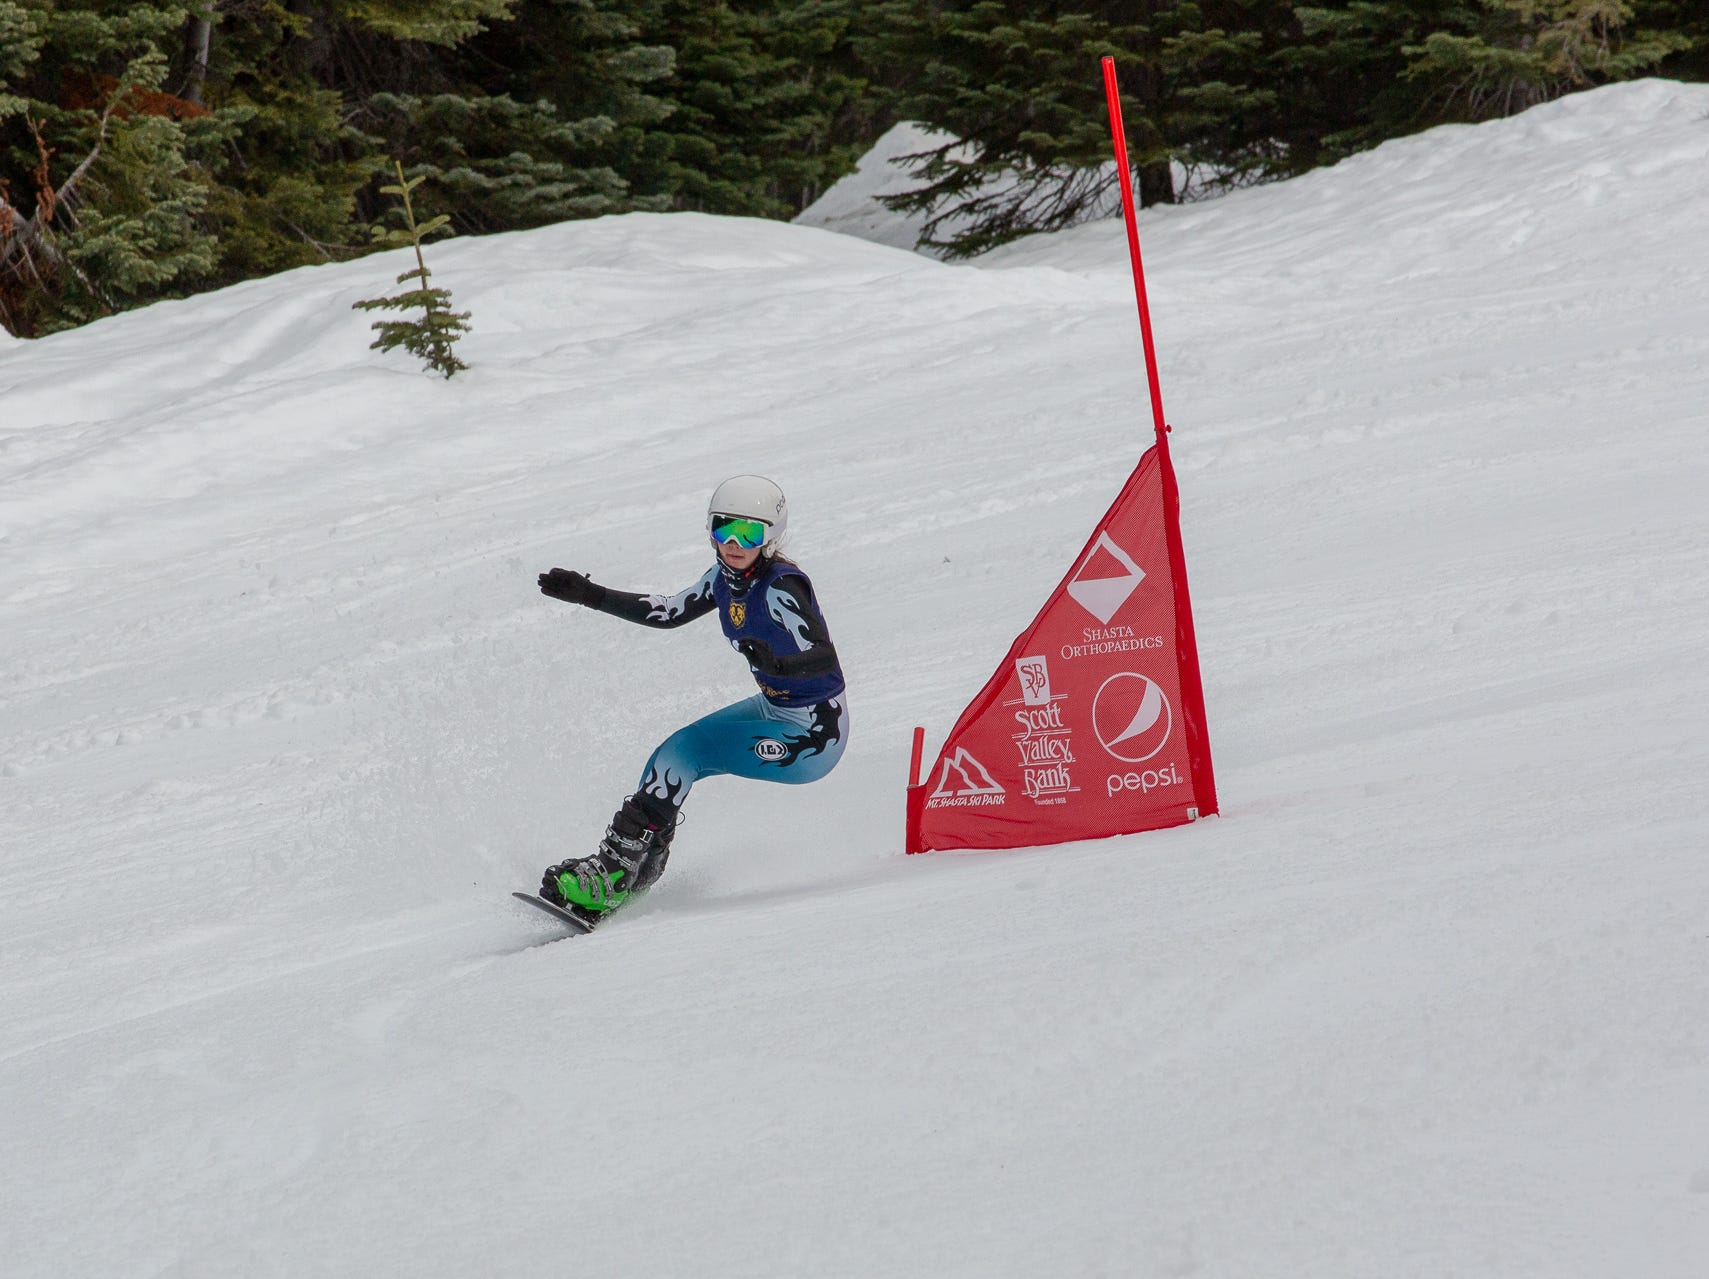 Tate Harkness of Mt. Shasta races in the third high school snowboard meet of 2019 on Monday, Jan. 28 at Mt. Shasta Ski Park.